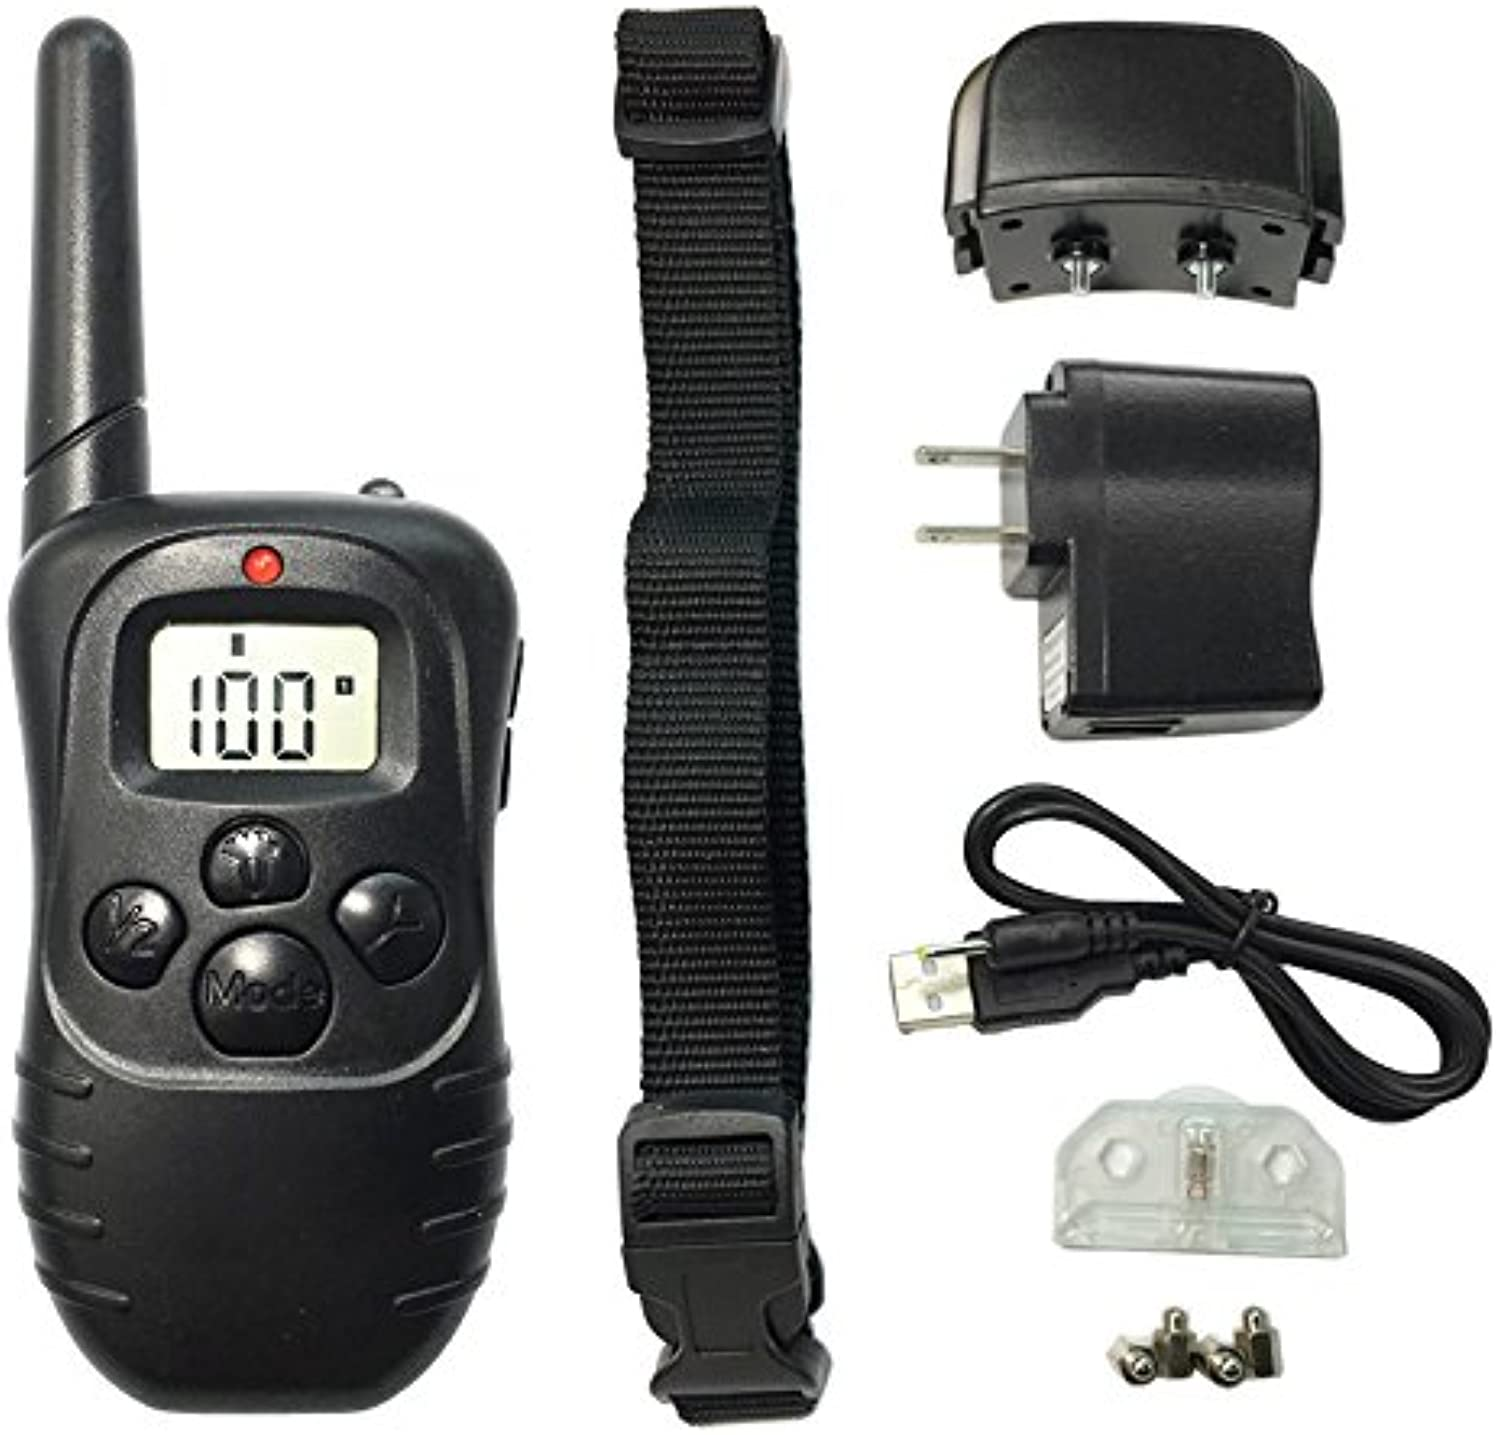 98DR1 Rechargeable And Waterproof 300M Remote Vibration Shock Electronic 100Level Dog Electric Collars